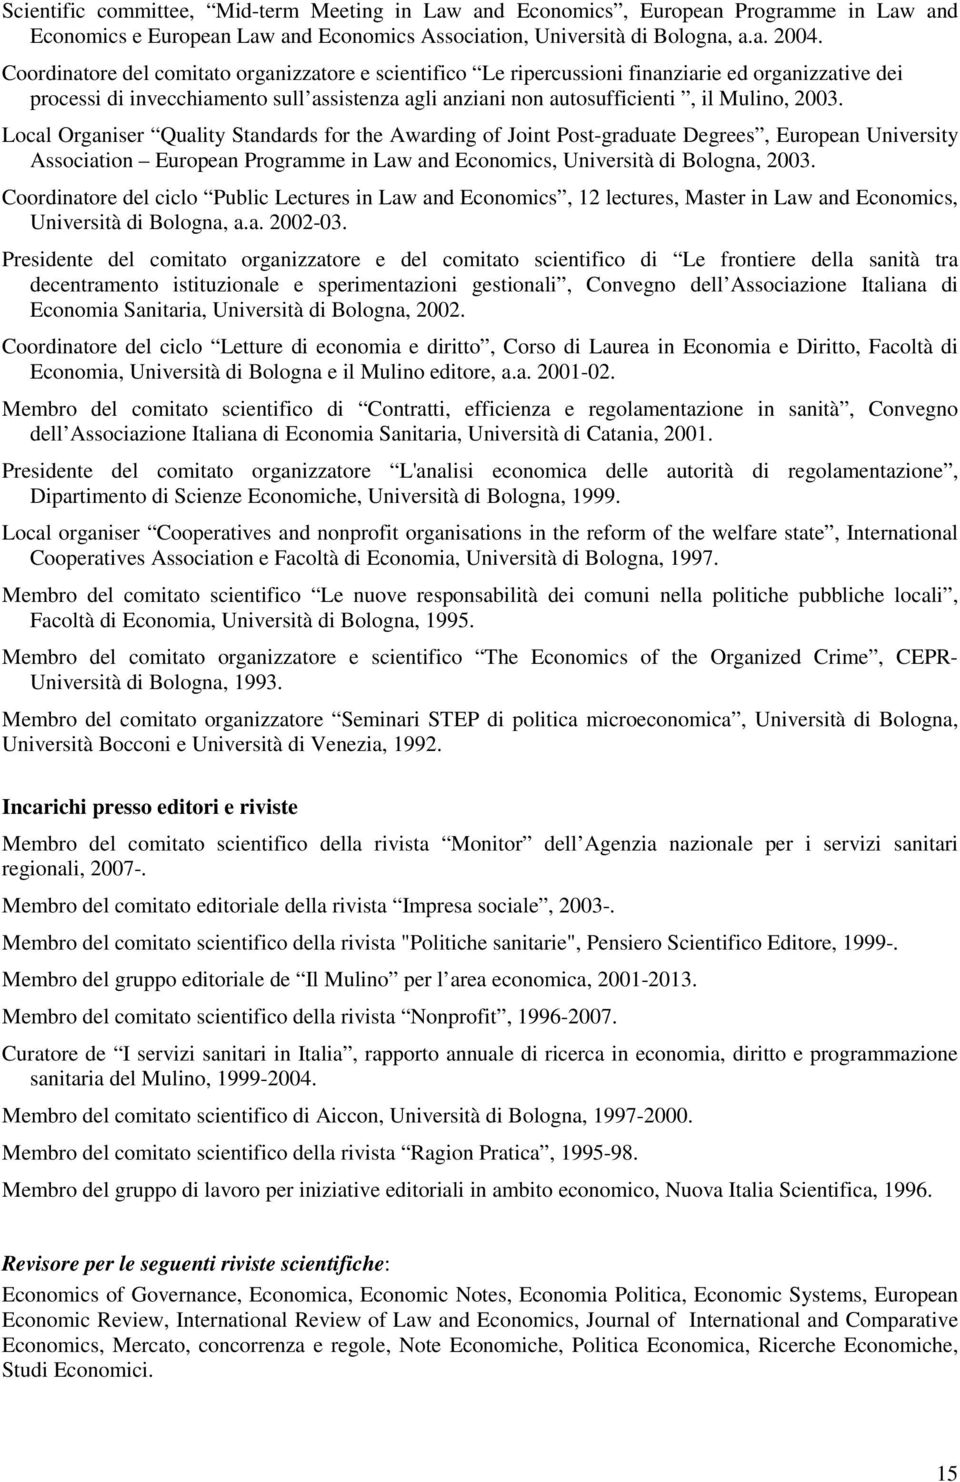 Local Organiser Quality Standards for the Awarding of Joint Post-graduate Degrees, European University Association European Programme in Law and Economics, Università di Bologna, 2003.